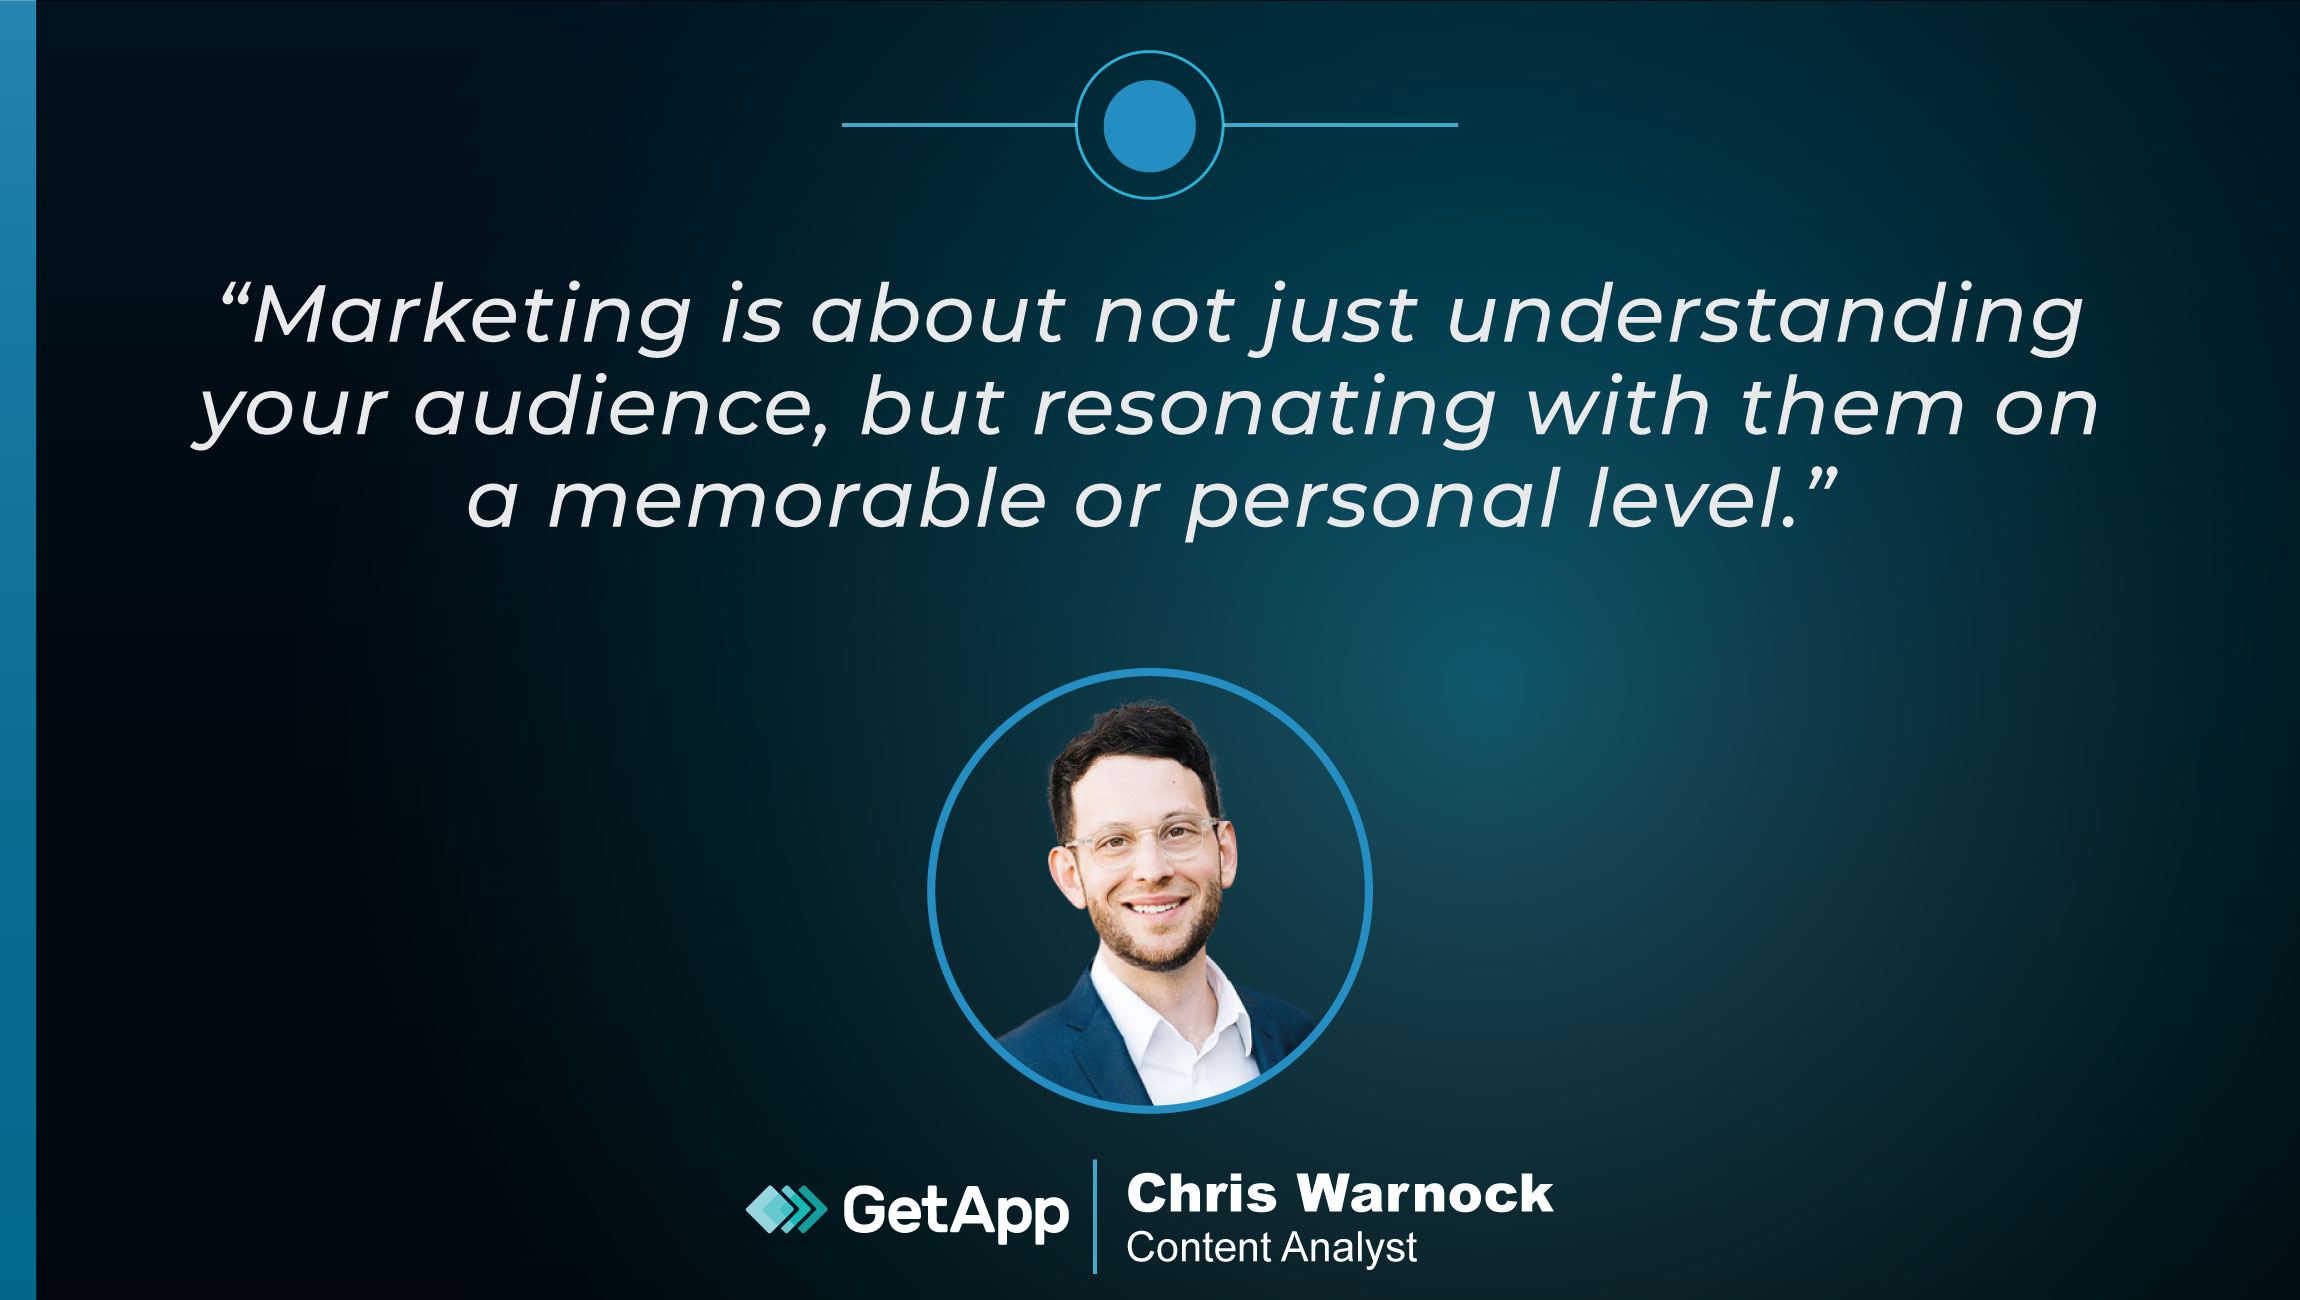 TechBytes with Chris Warnock, Content Analyst at GetApp (now part of Gartner)